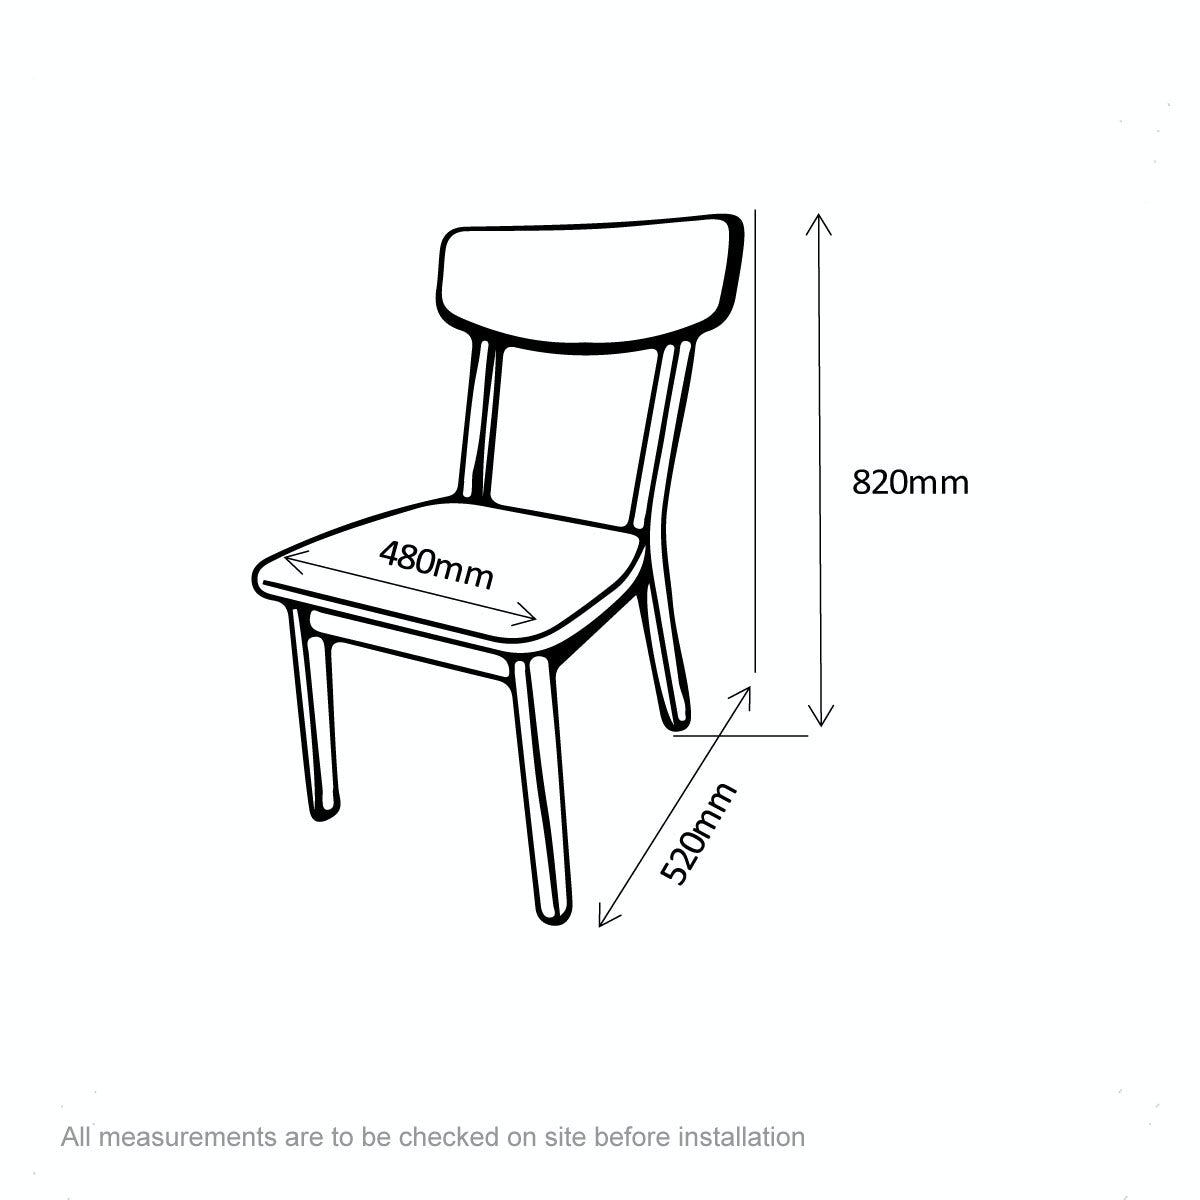 Dimensions for Archer pair of dining chairs